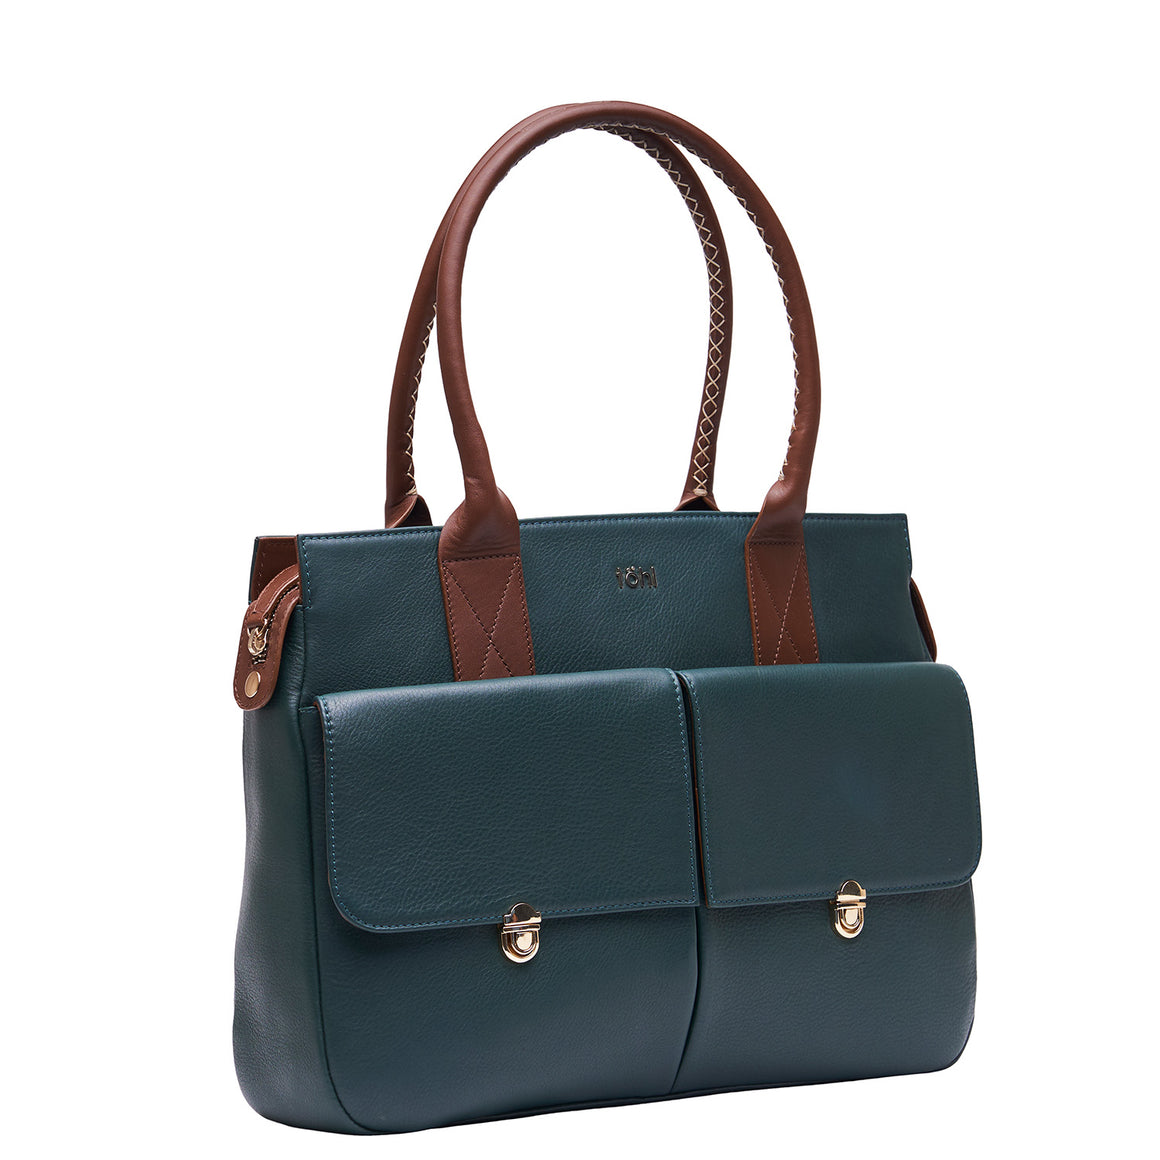 HH 0015 - TOHL GALWAY WOMEN'S VALISES & SATCHELS - FOREST GREEN